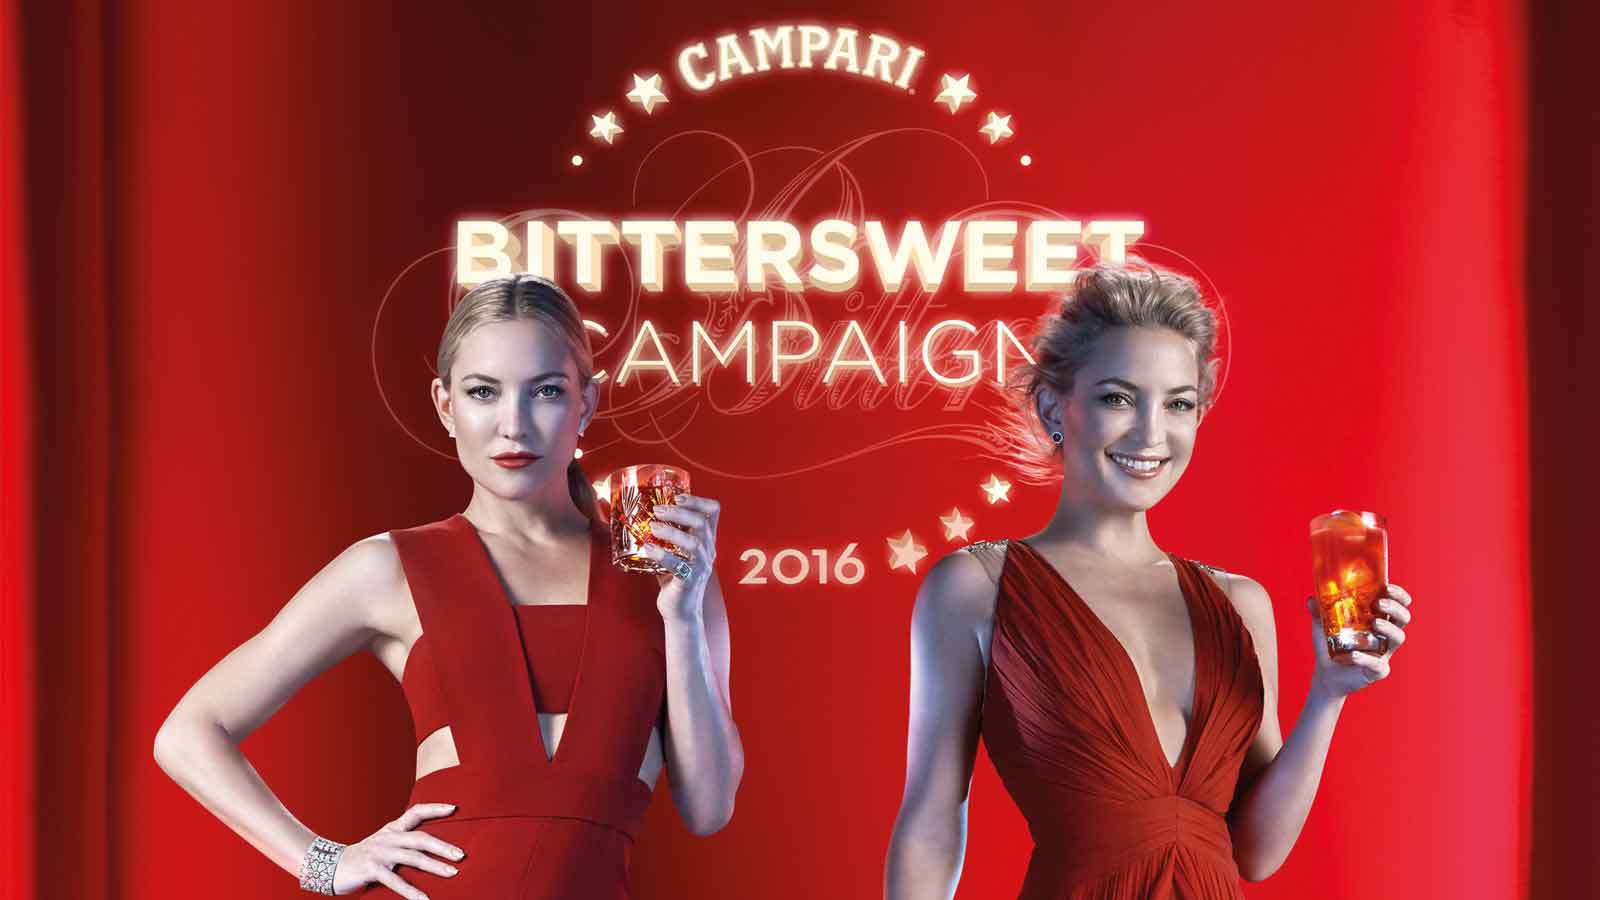 Campari takes a stand for its BitterSweetness with Hollywood actress Kate Hudson